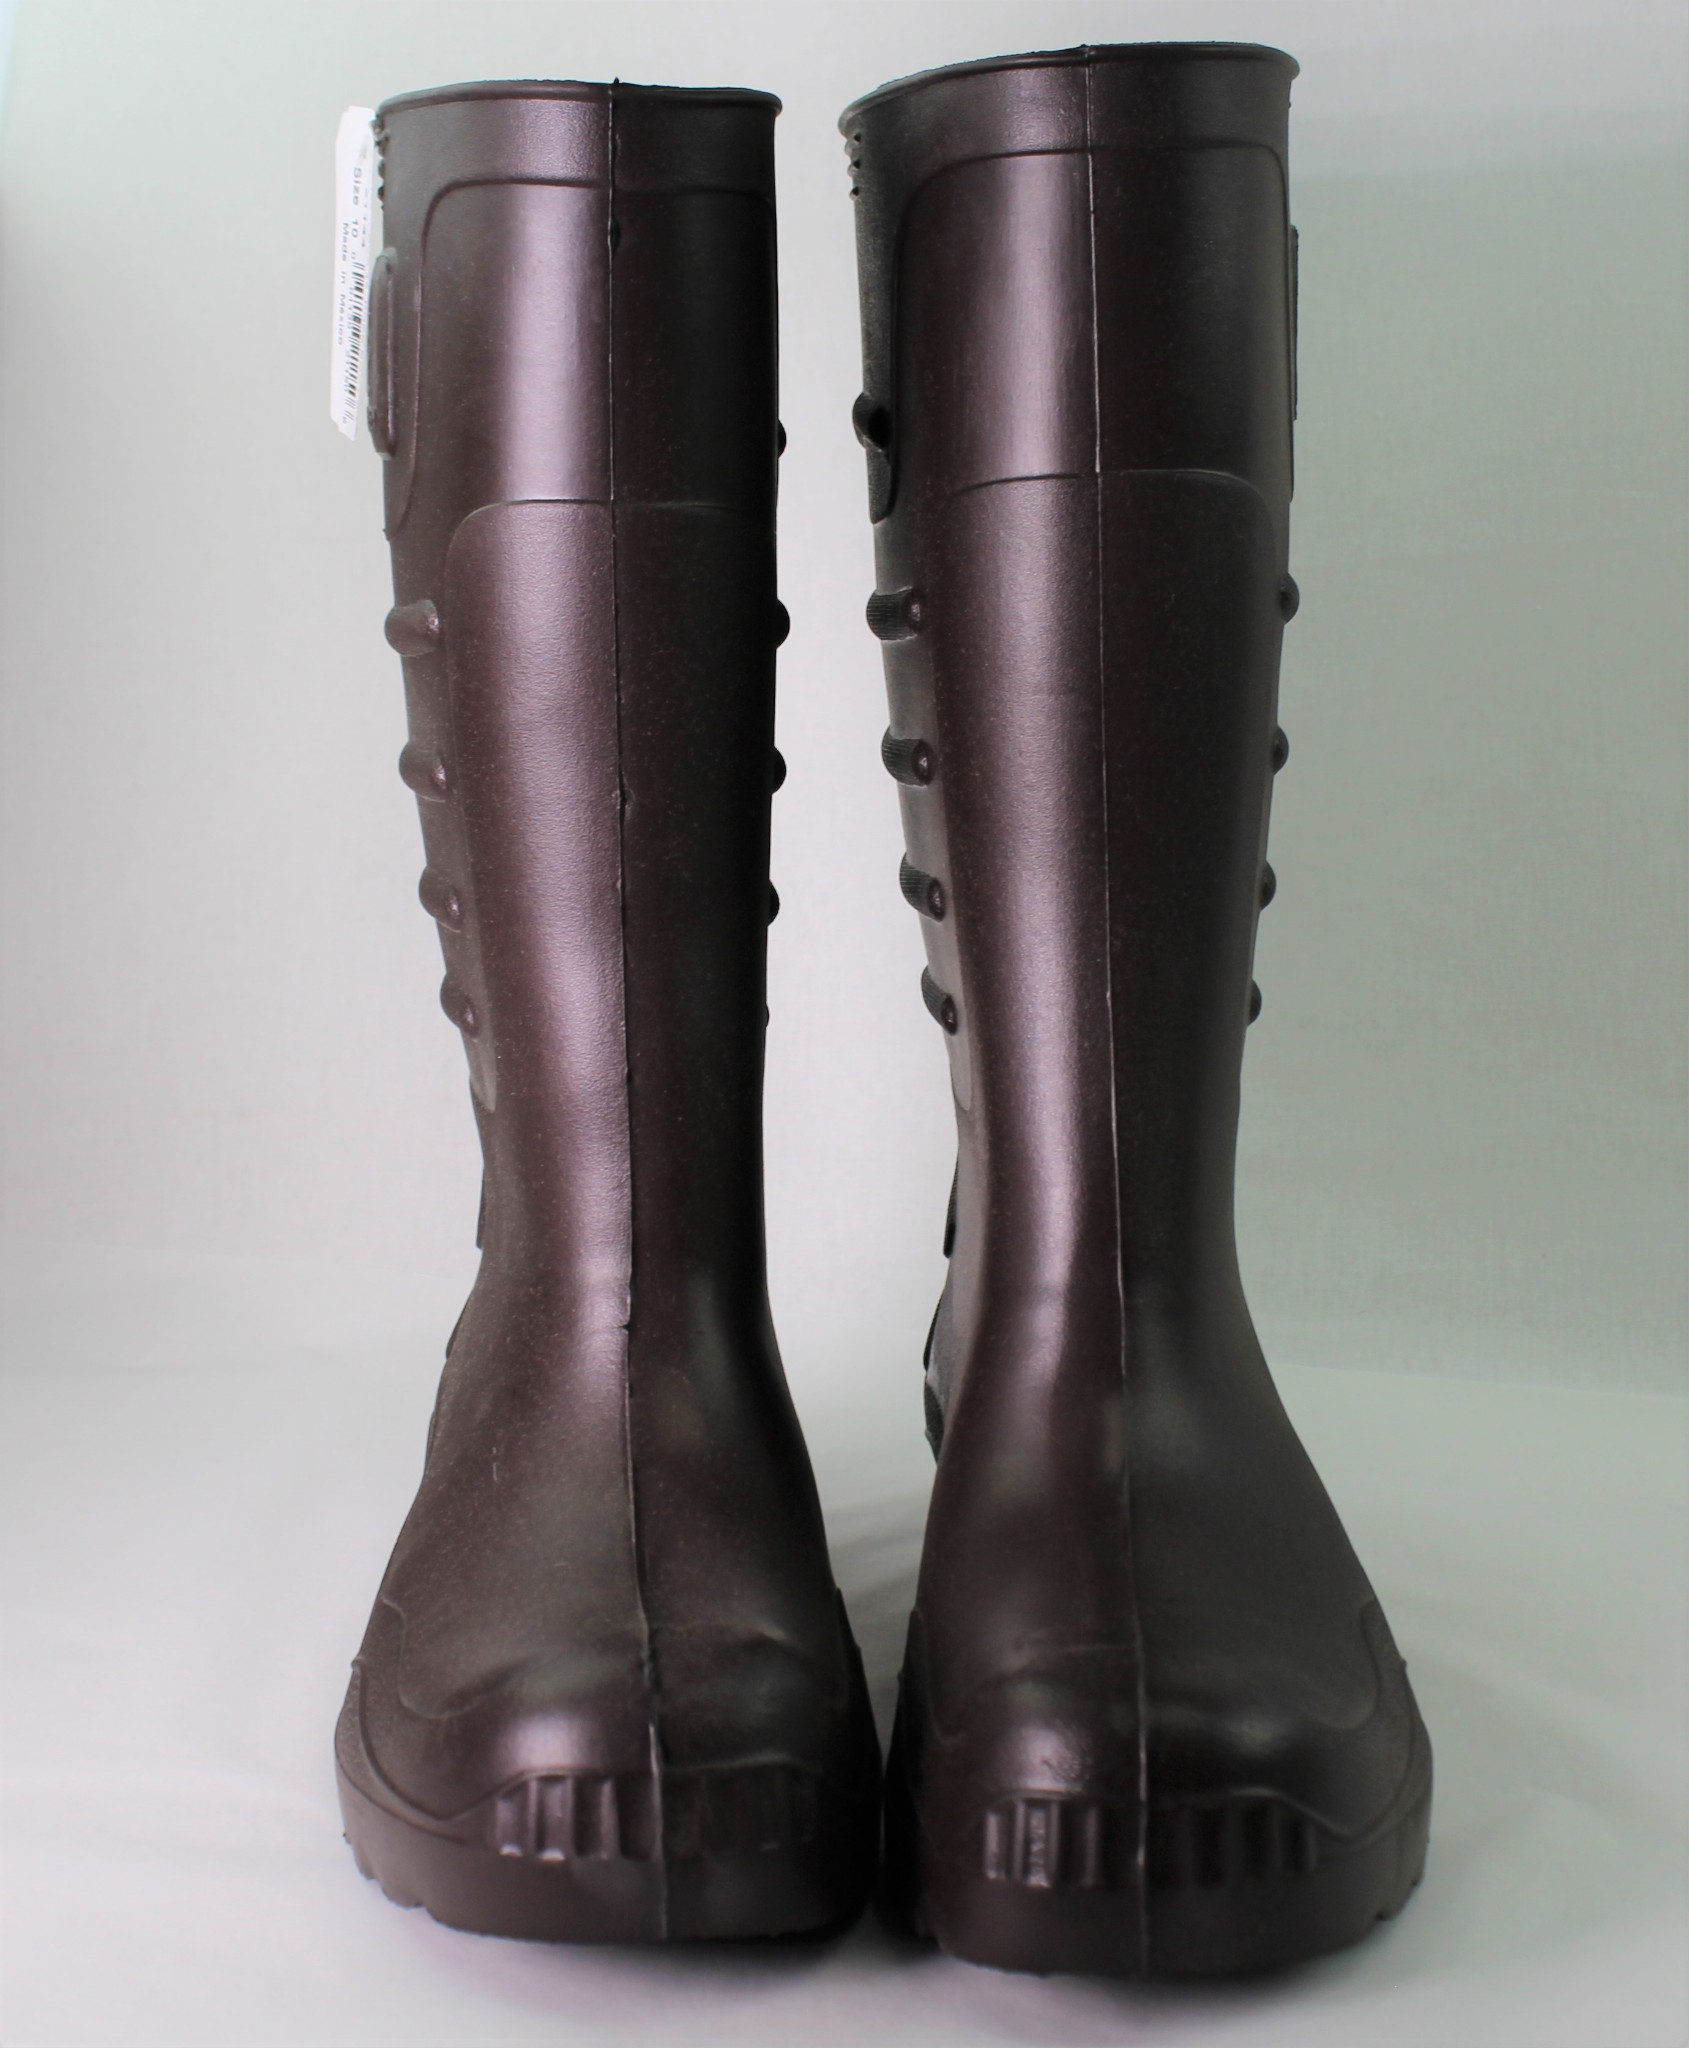 in stock 45f5a 905db Details about Tingley Ultra Lightweight Boots Eva Knee Boot Size 10 Brown  Style #21144